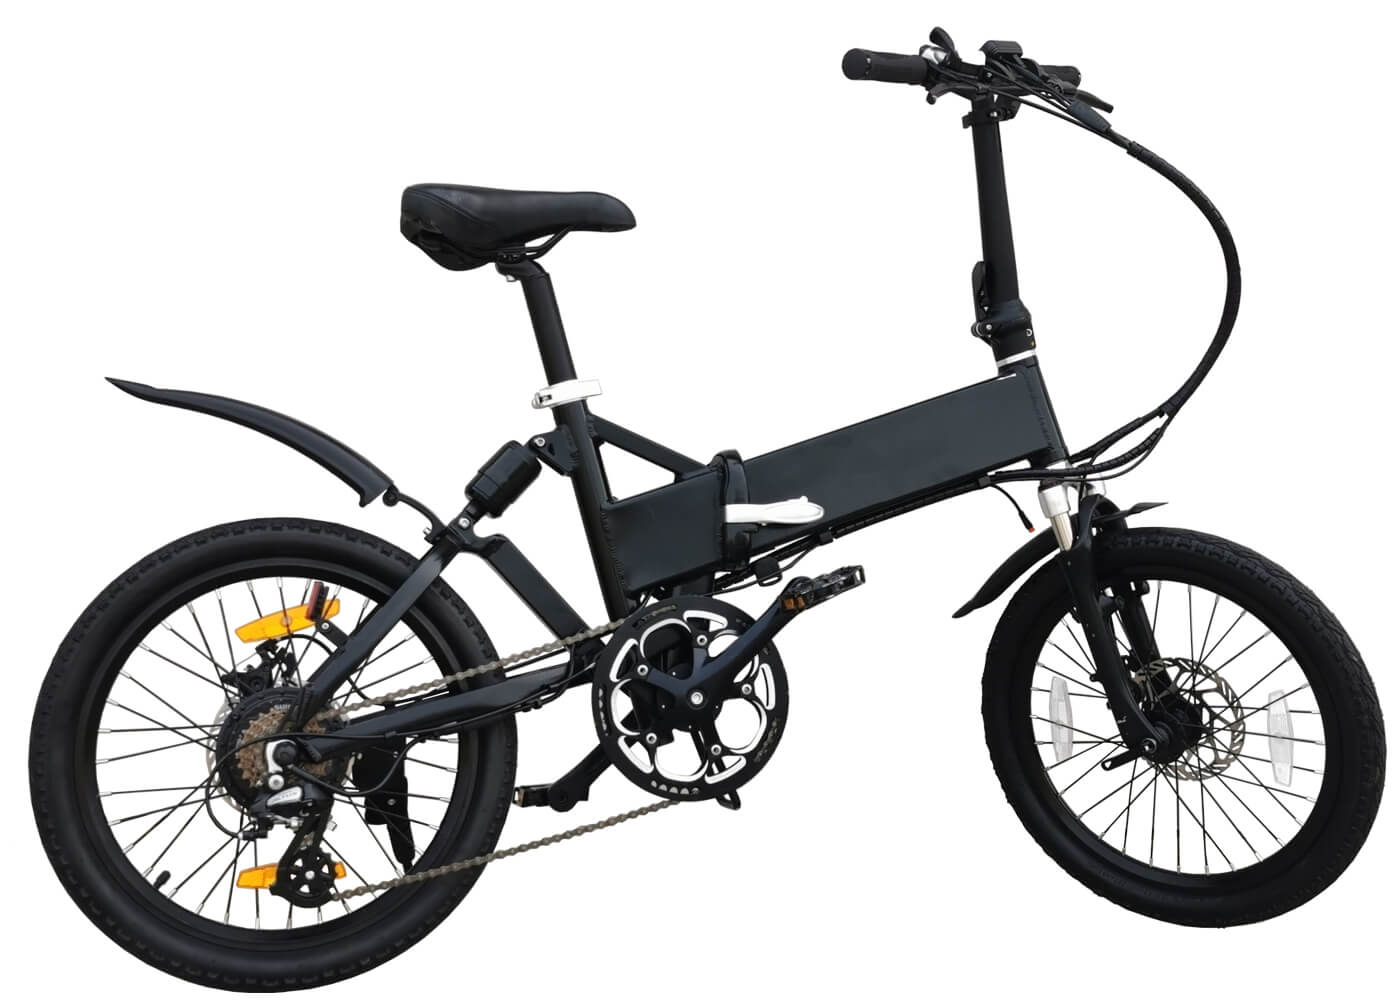 ZooMee electric pedal bikes Burswood Perth